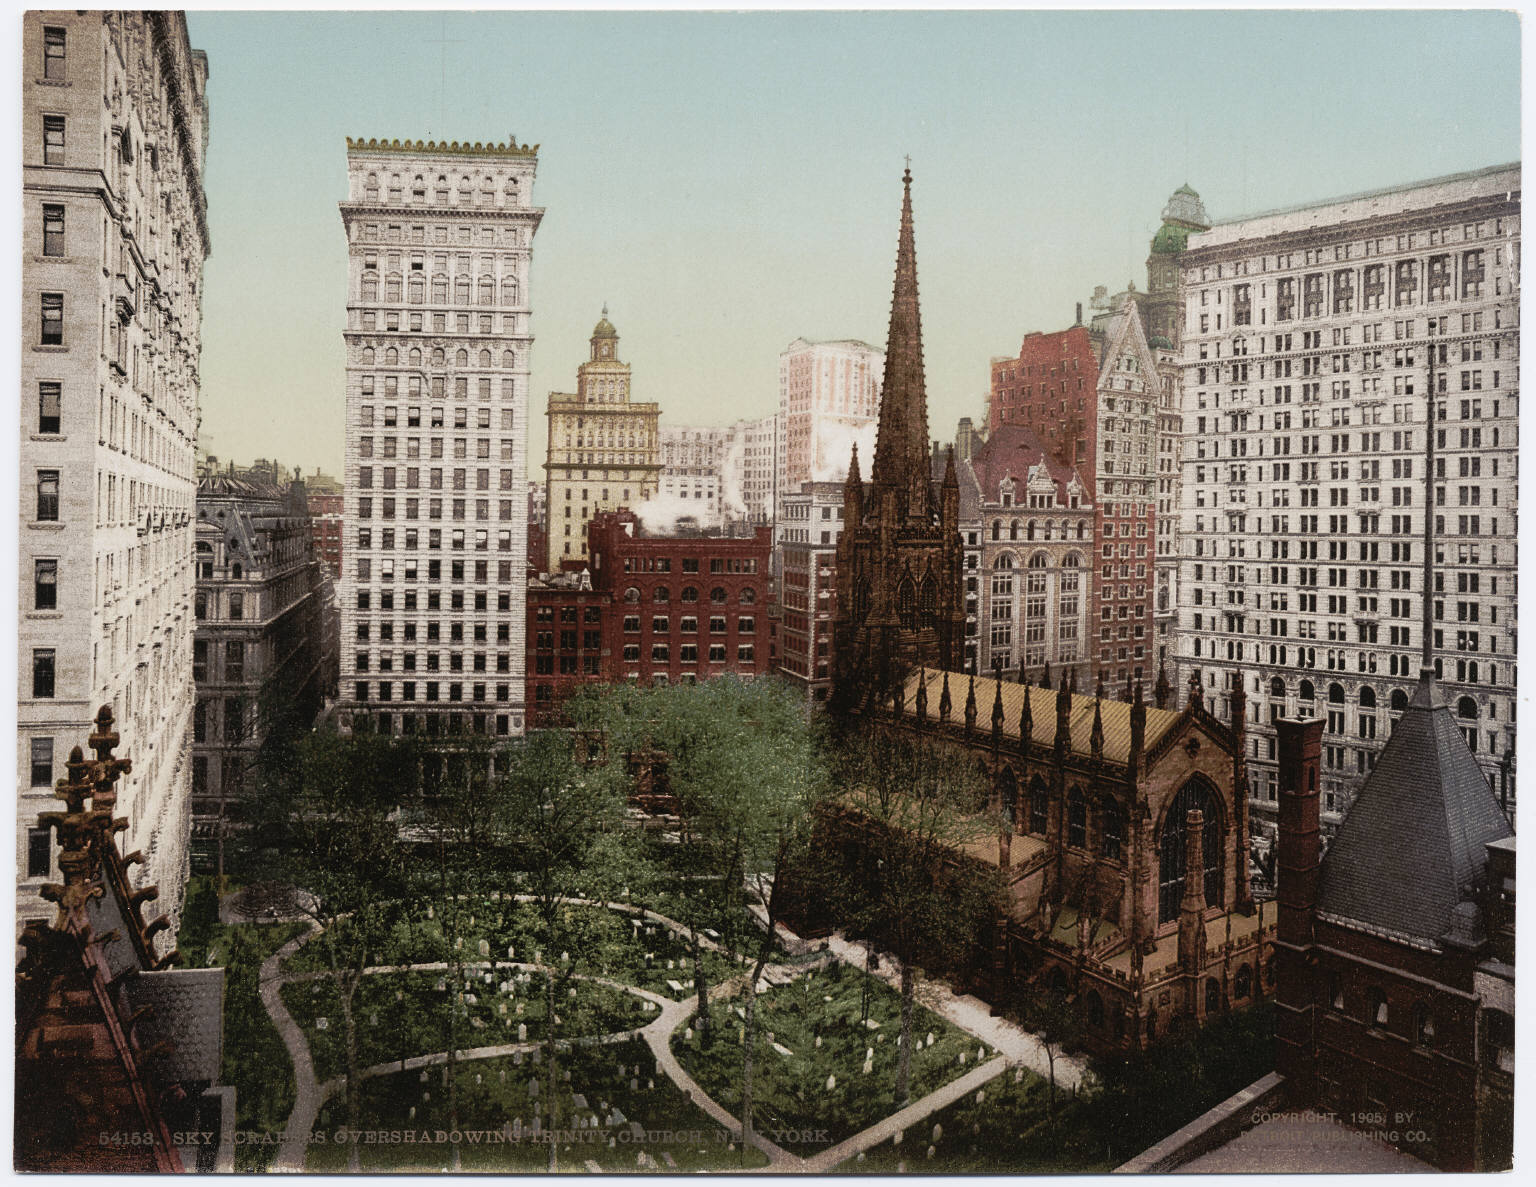 Trinity Church and grounds, image circa 1900's by the Detroit Photographic Company